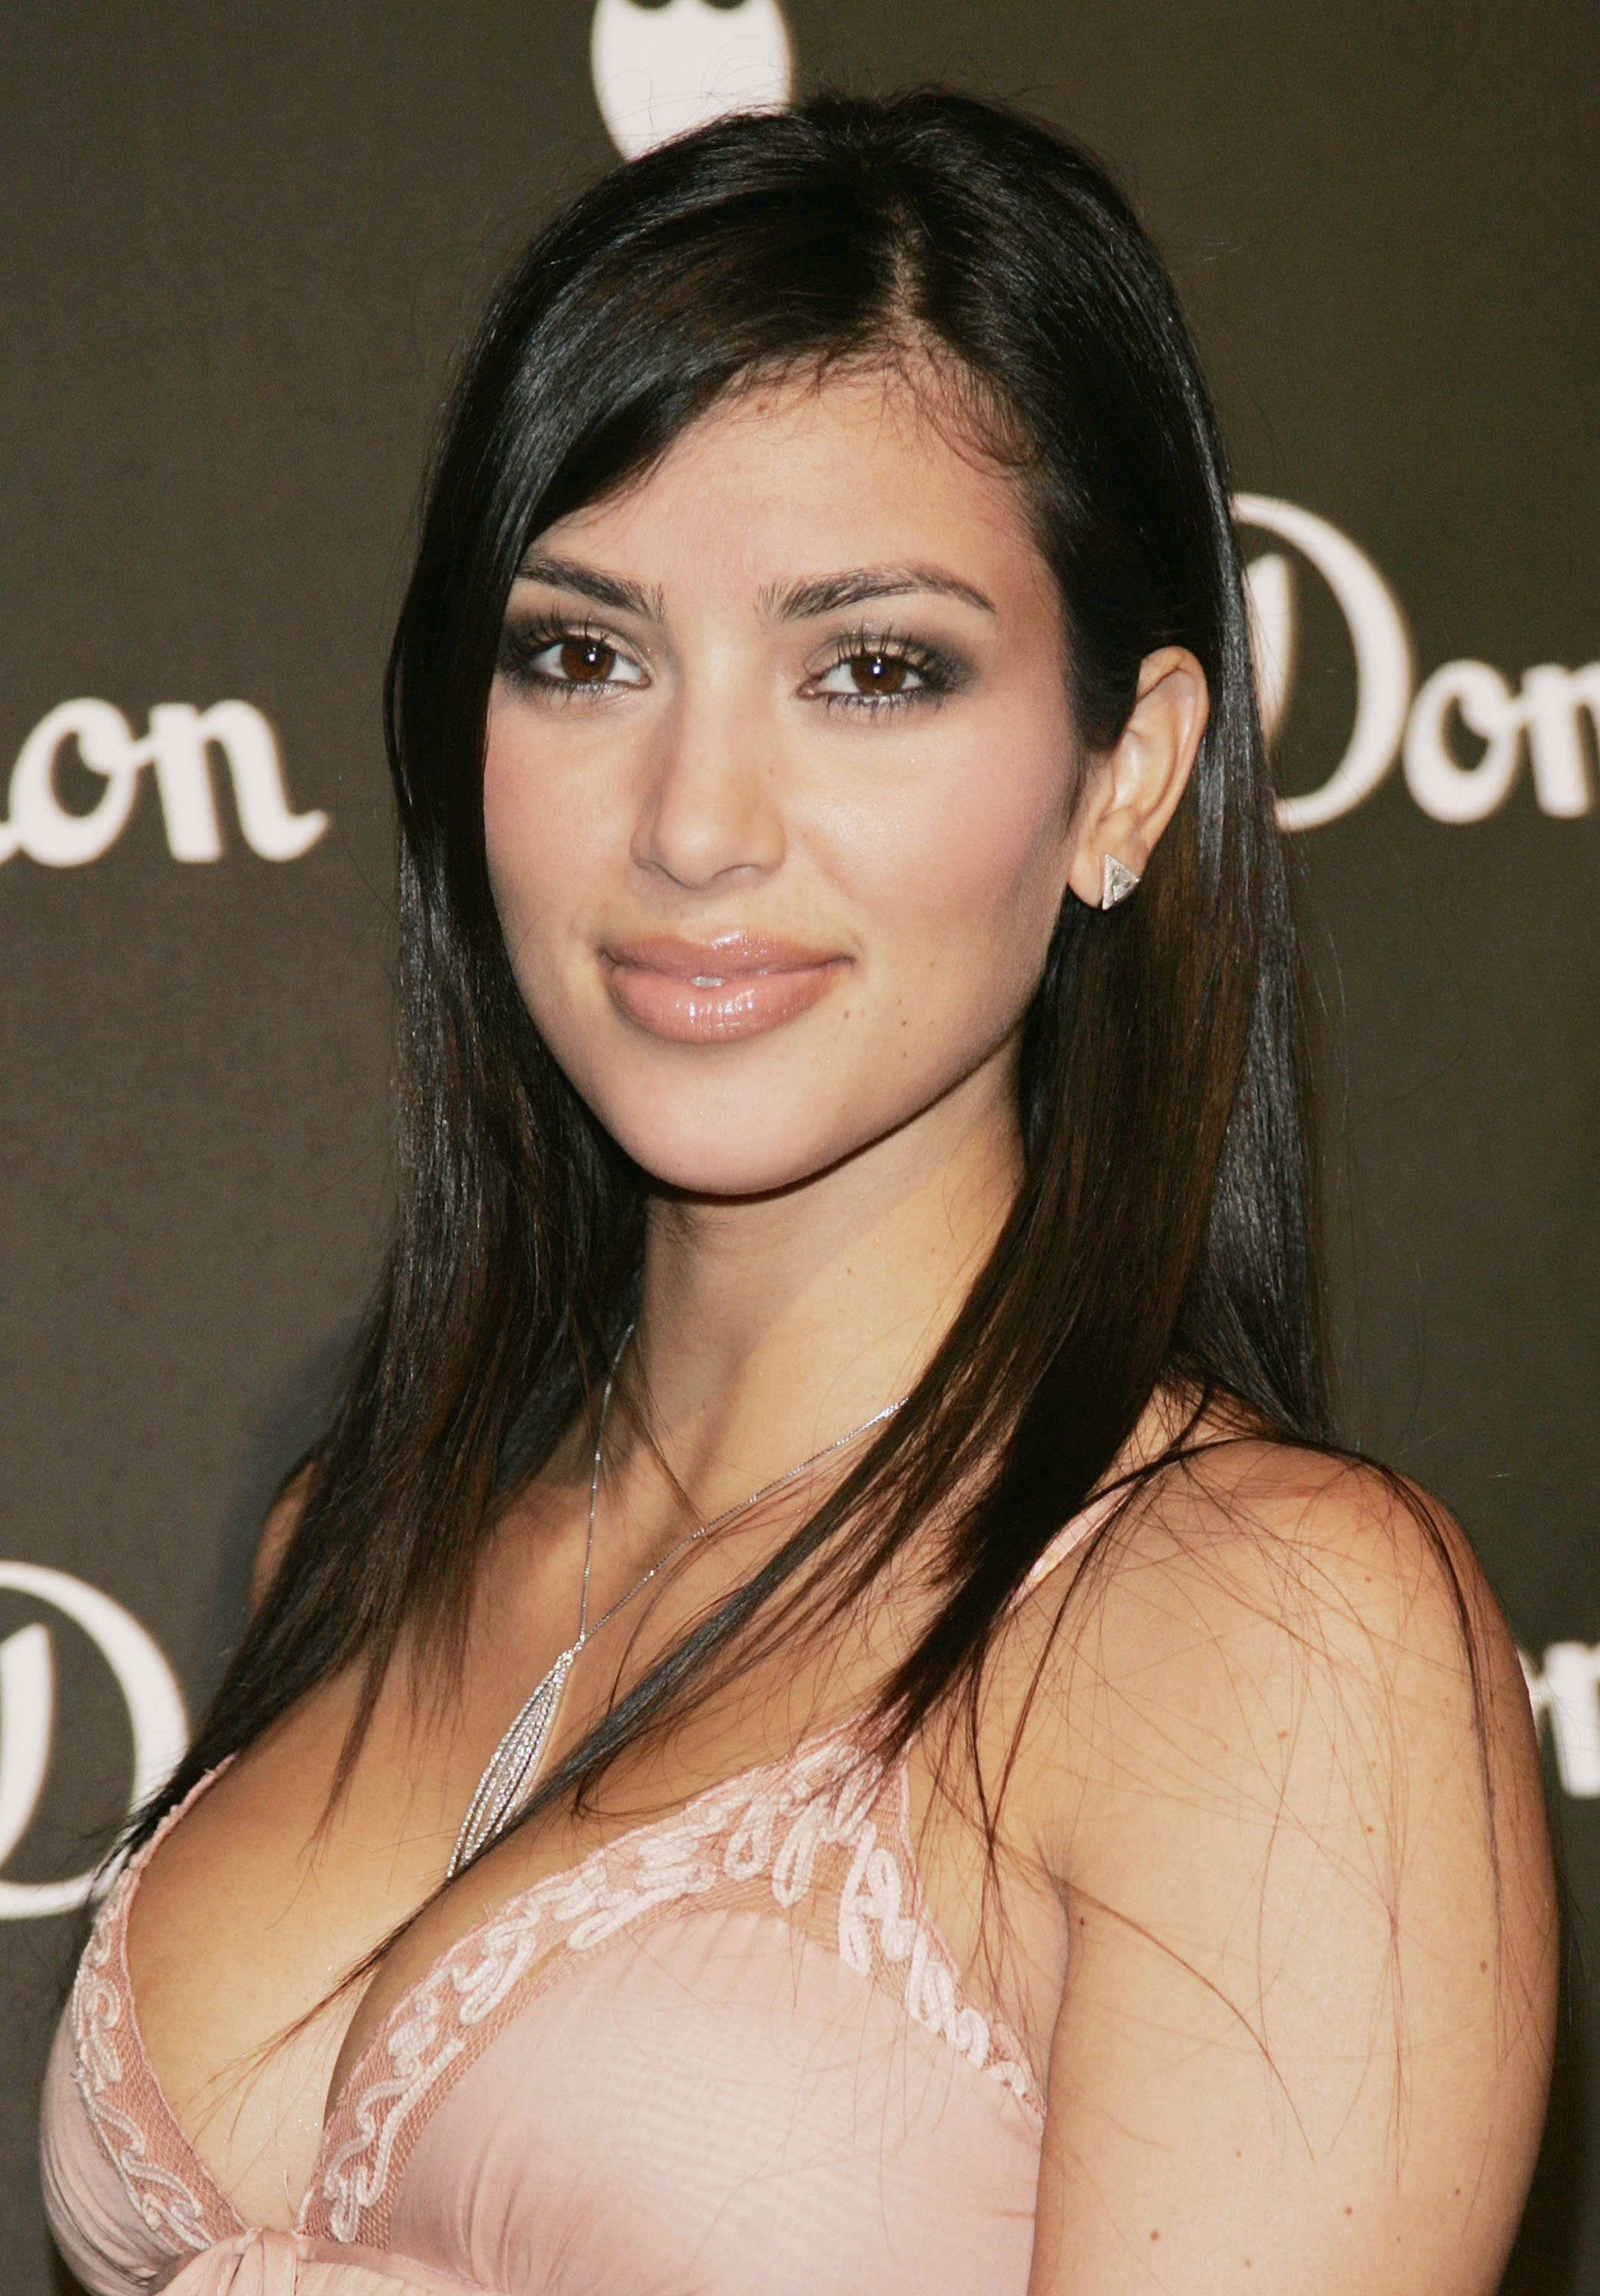 Kim Kardashian at the International Launch of Dom Perignon Rose Vintage 1996 Champagne on June 2, 2006 l Photo: Getty Images